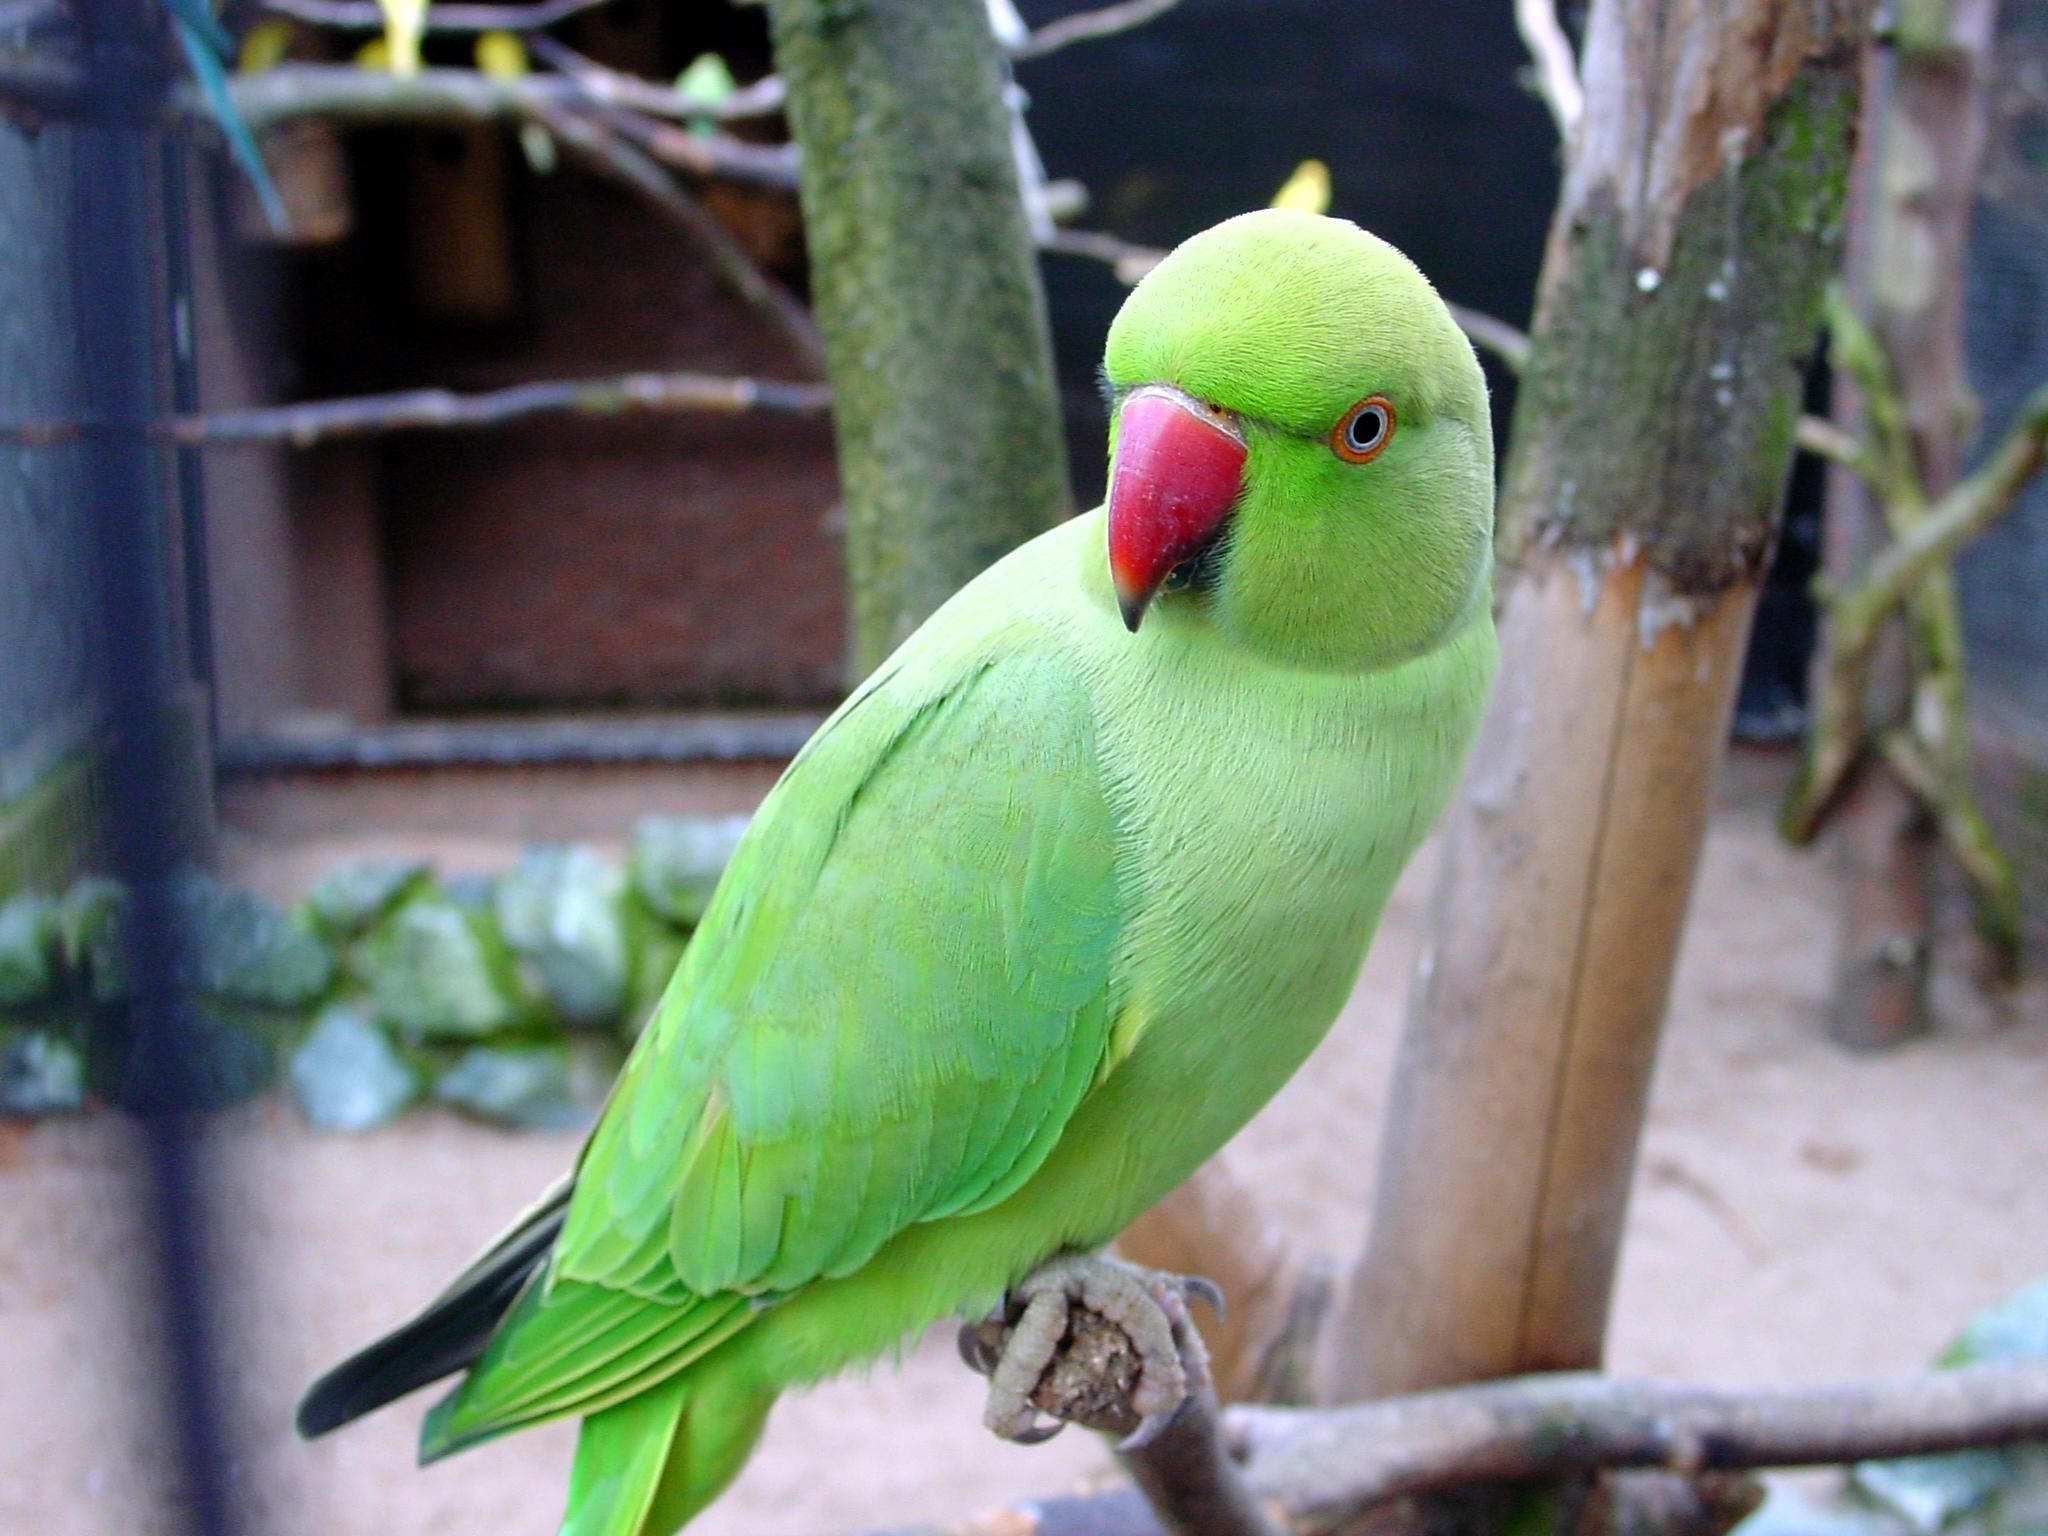 Parot Wallpapers Green Parrots Wallpaper Feathers Parrot Wallpaper Ring Necked